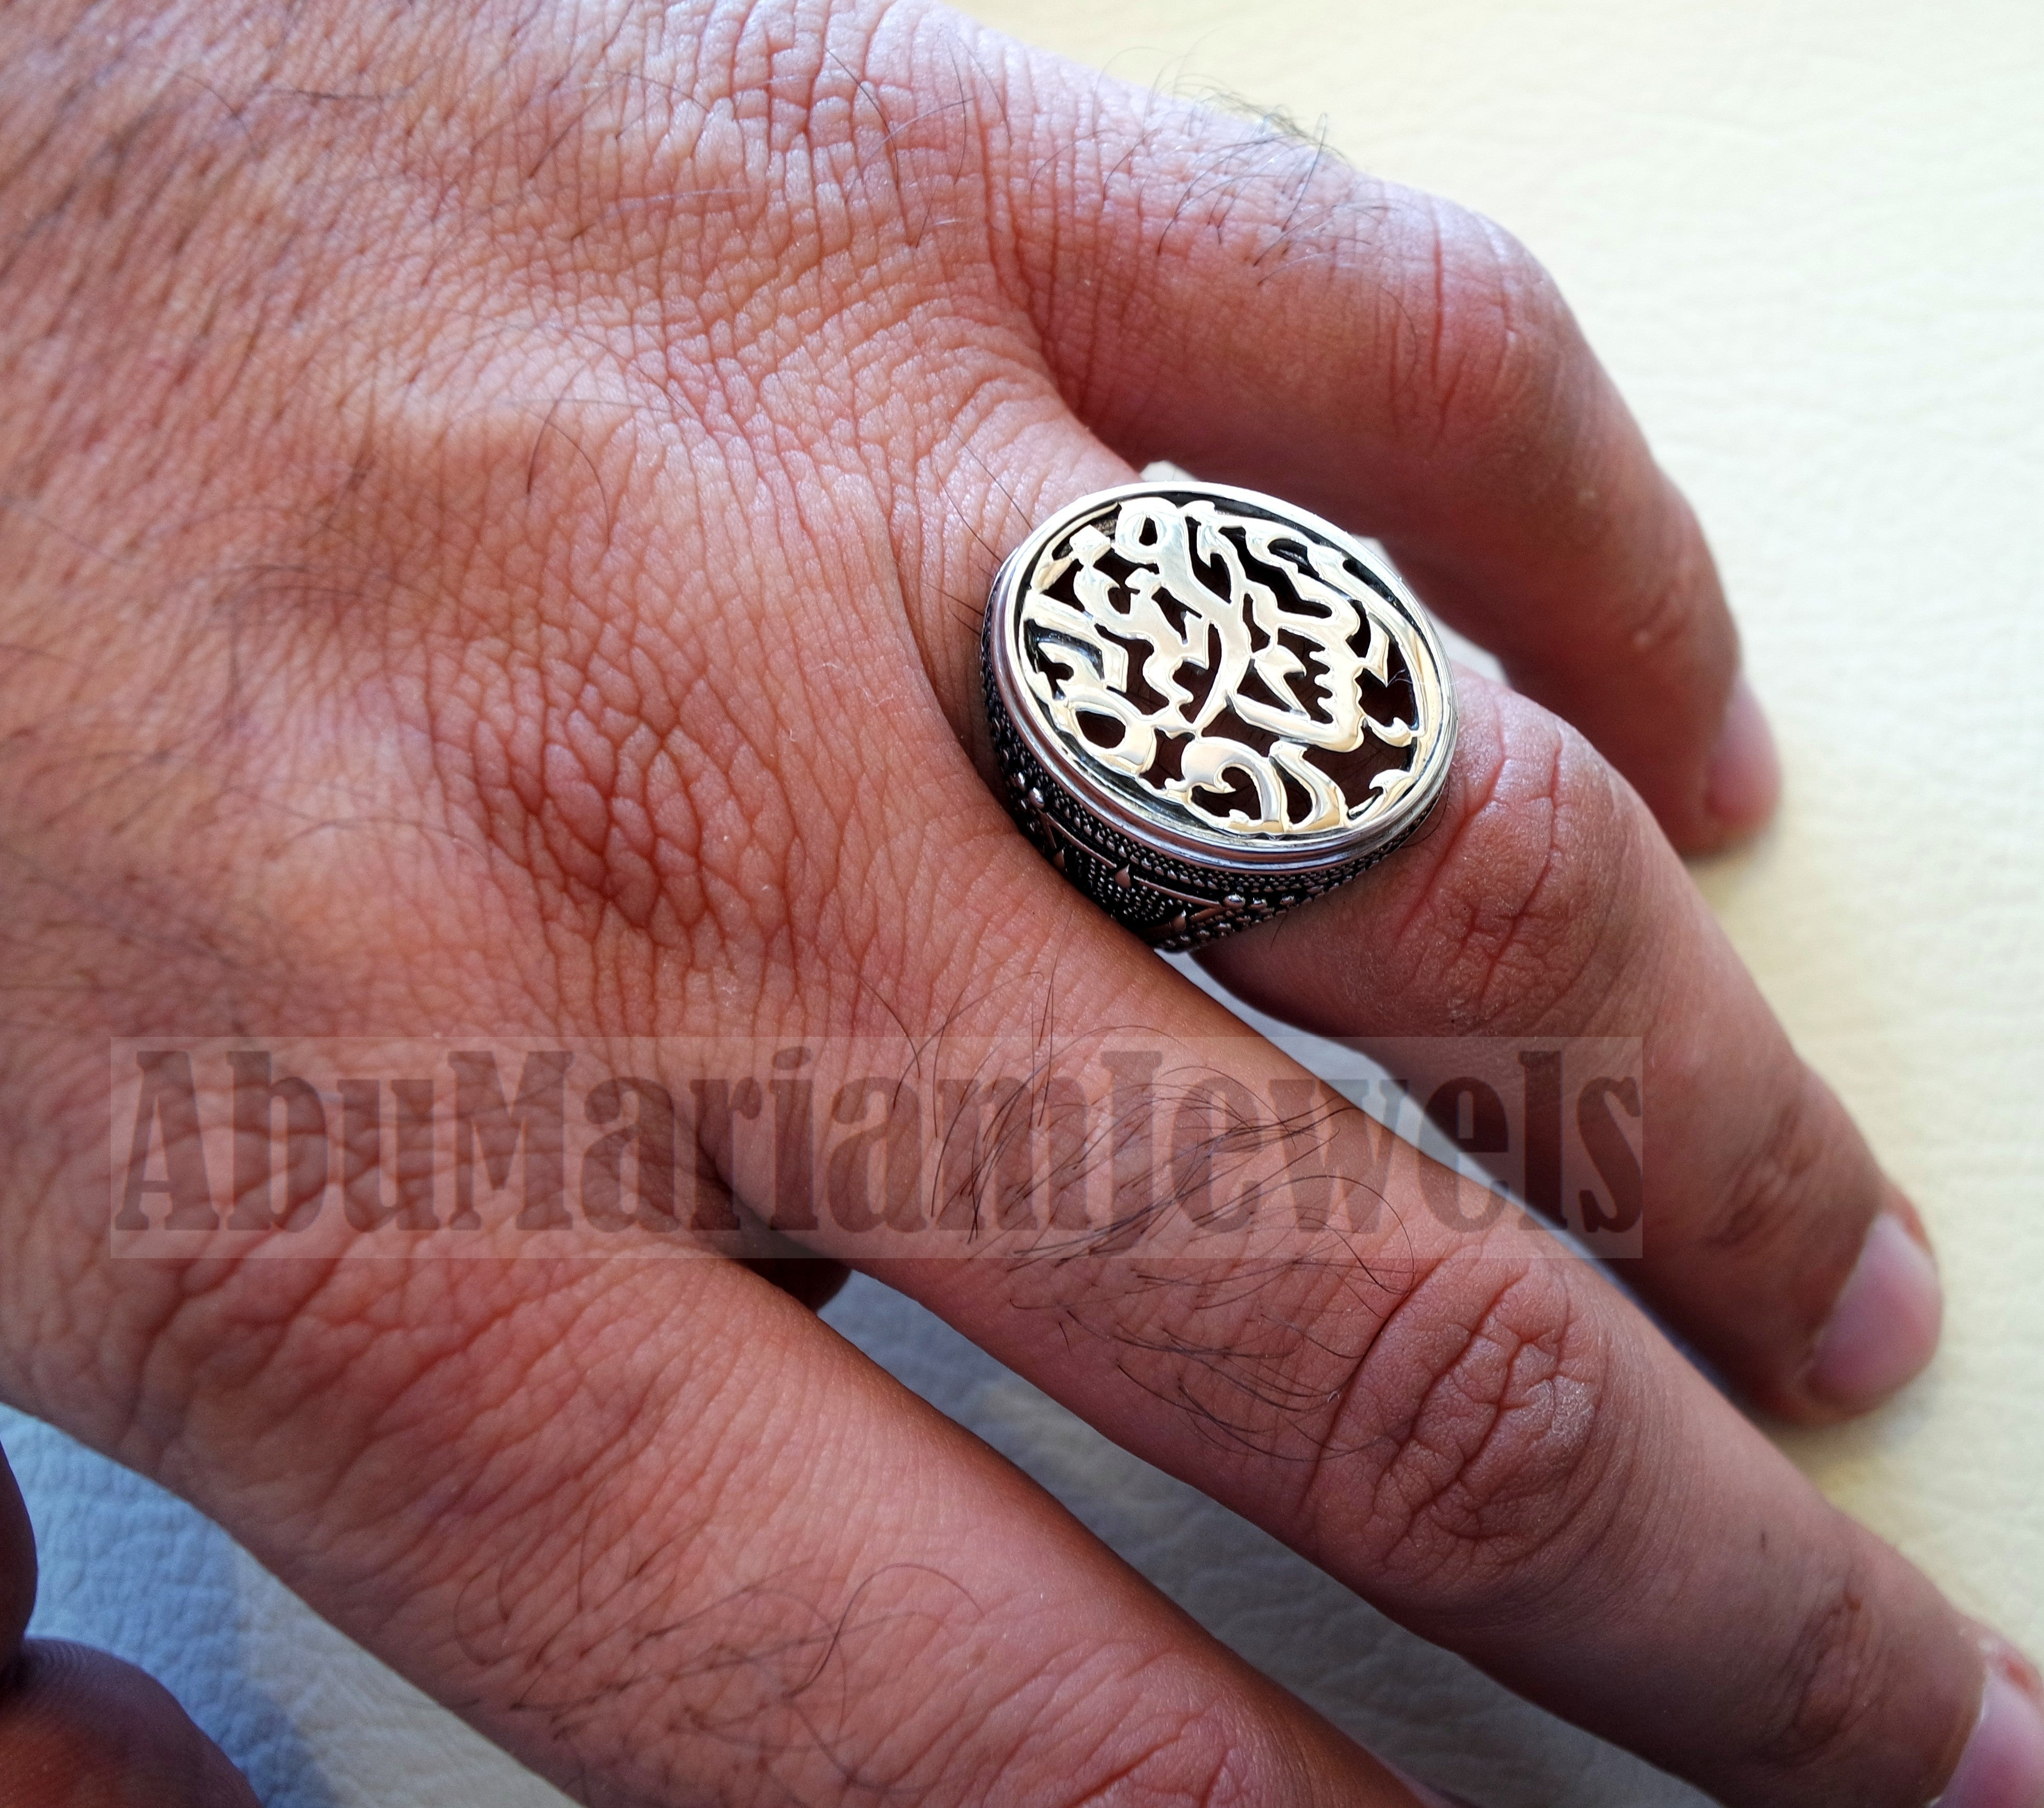 Customized Arabic calligraphy names handmade ring personalized antique jewelry style sterling silver 925 any size TSN1015 خاتم اسم تفصيل